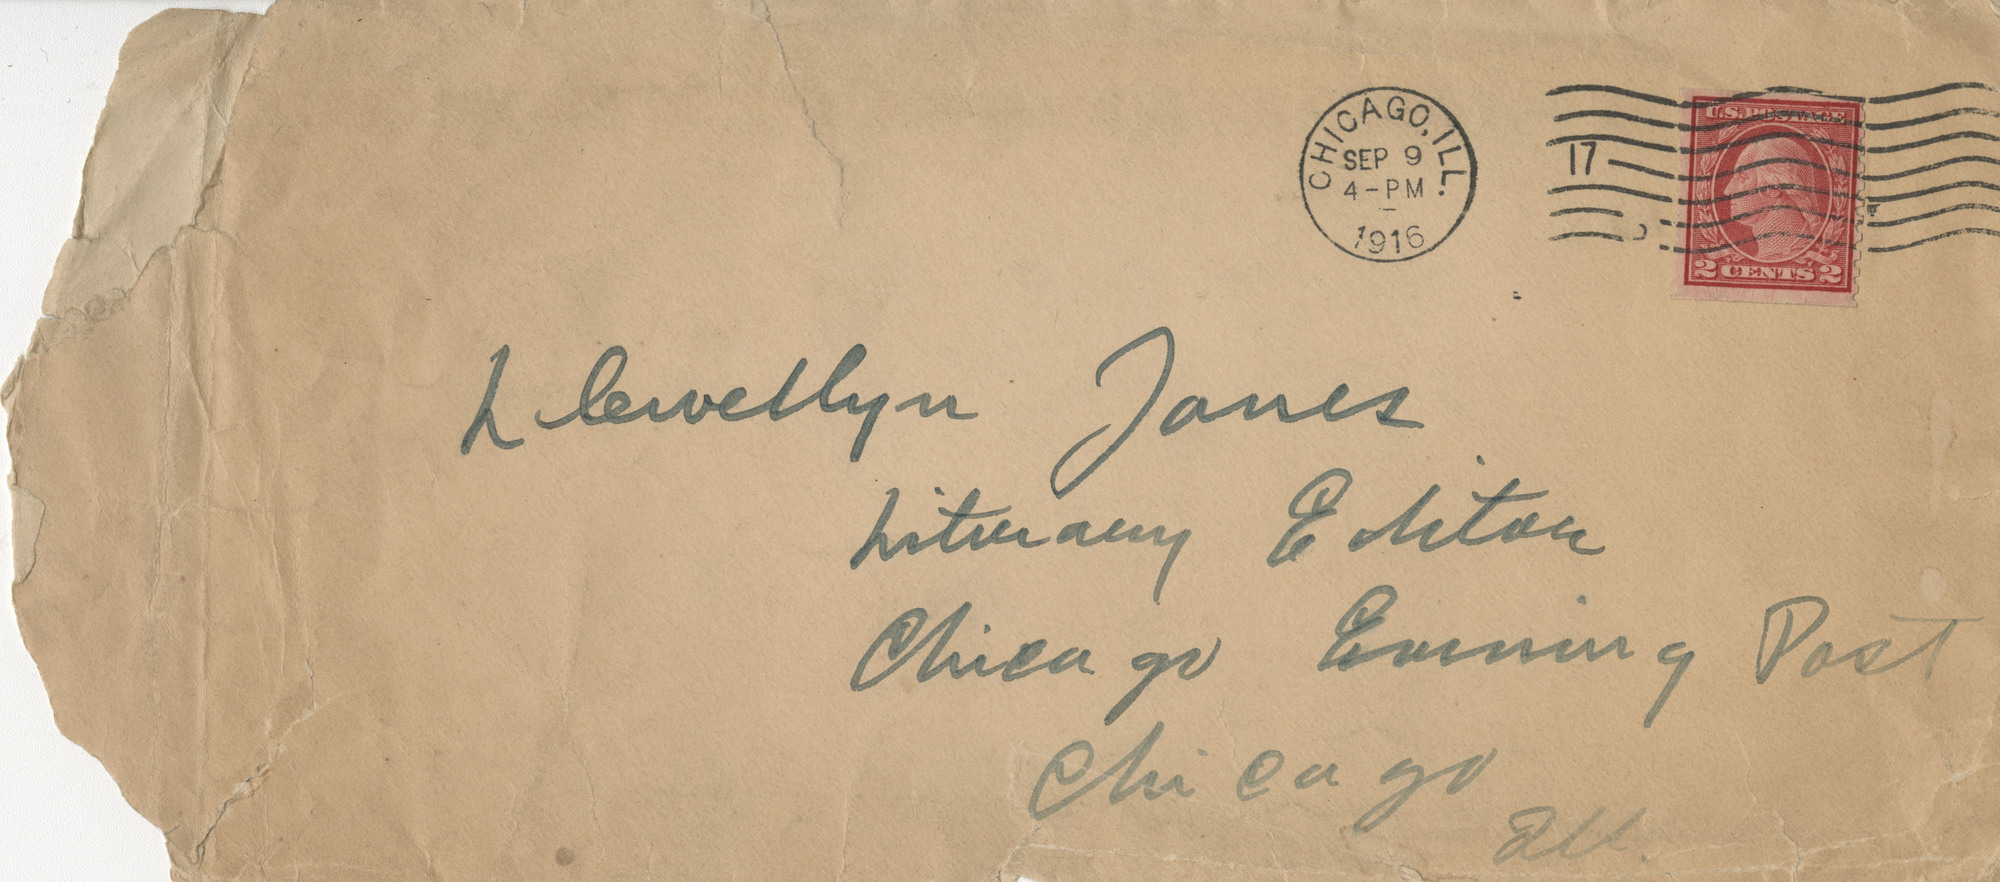 Ms2015-044_AndersonSherwood_Letter_1916_0909env.jpg